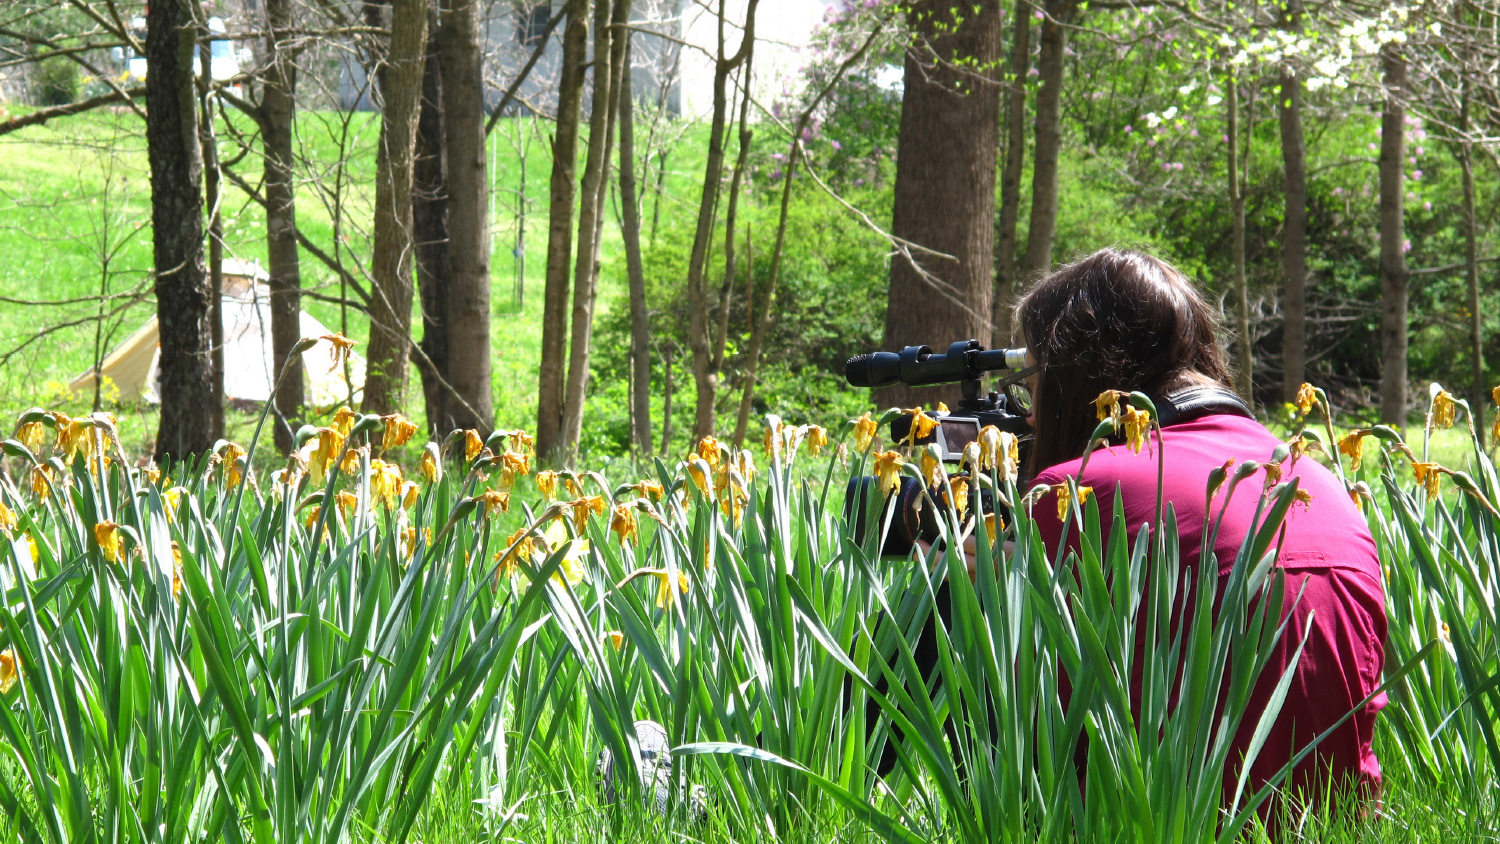 TFMA student films outdoors